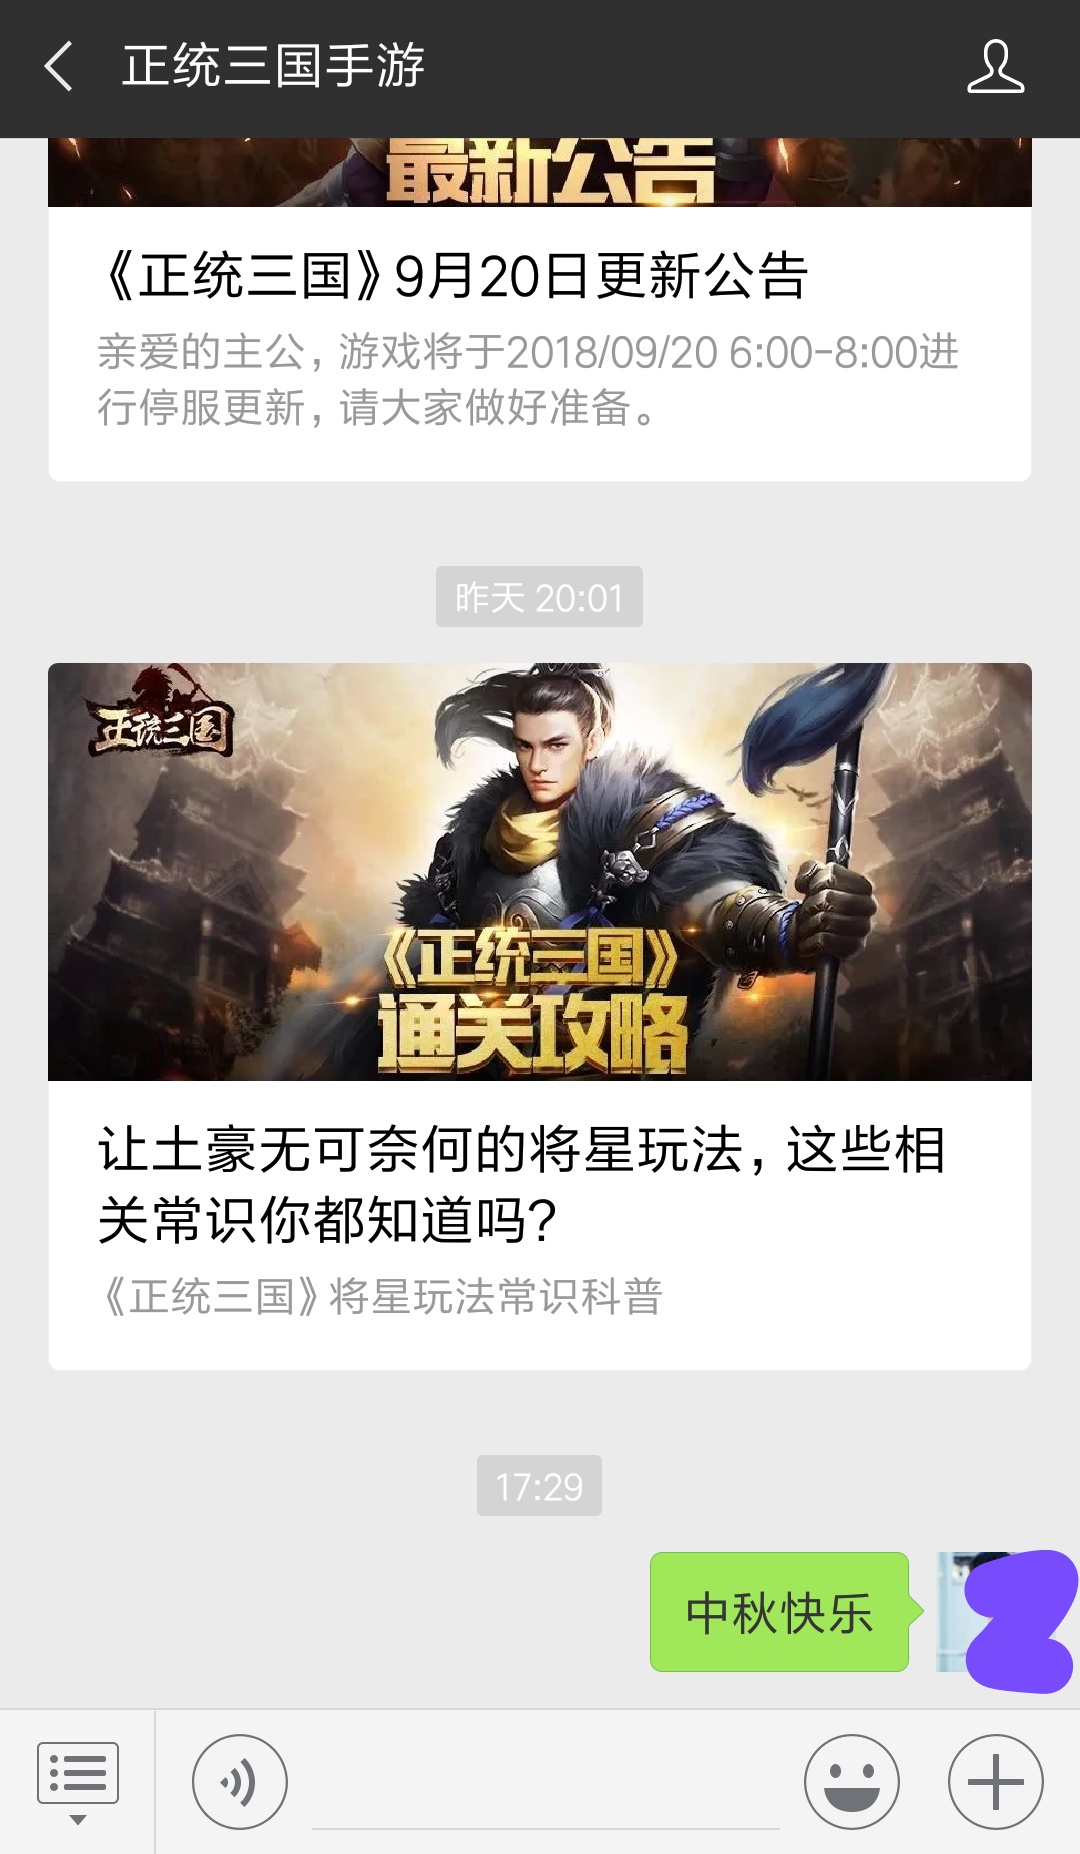 Screenshot_2018-09-20-17-29-52-437_com.tencent.mm.png